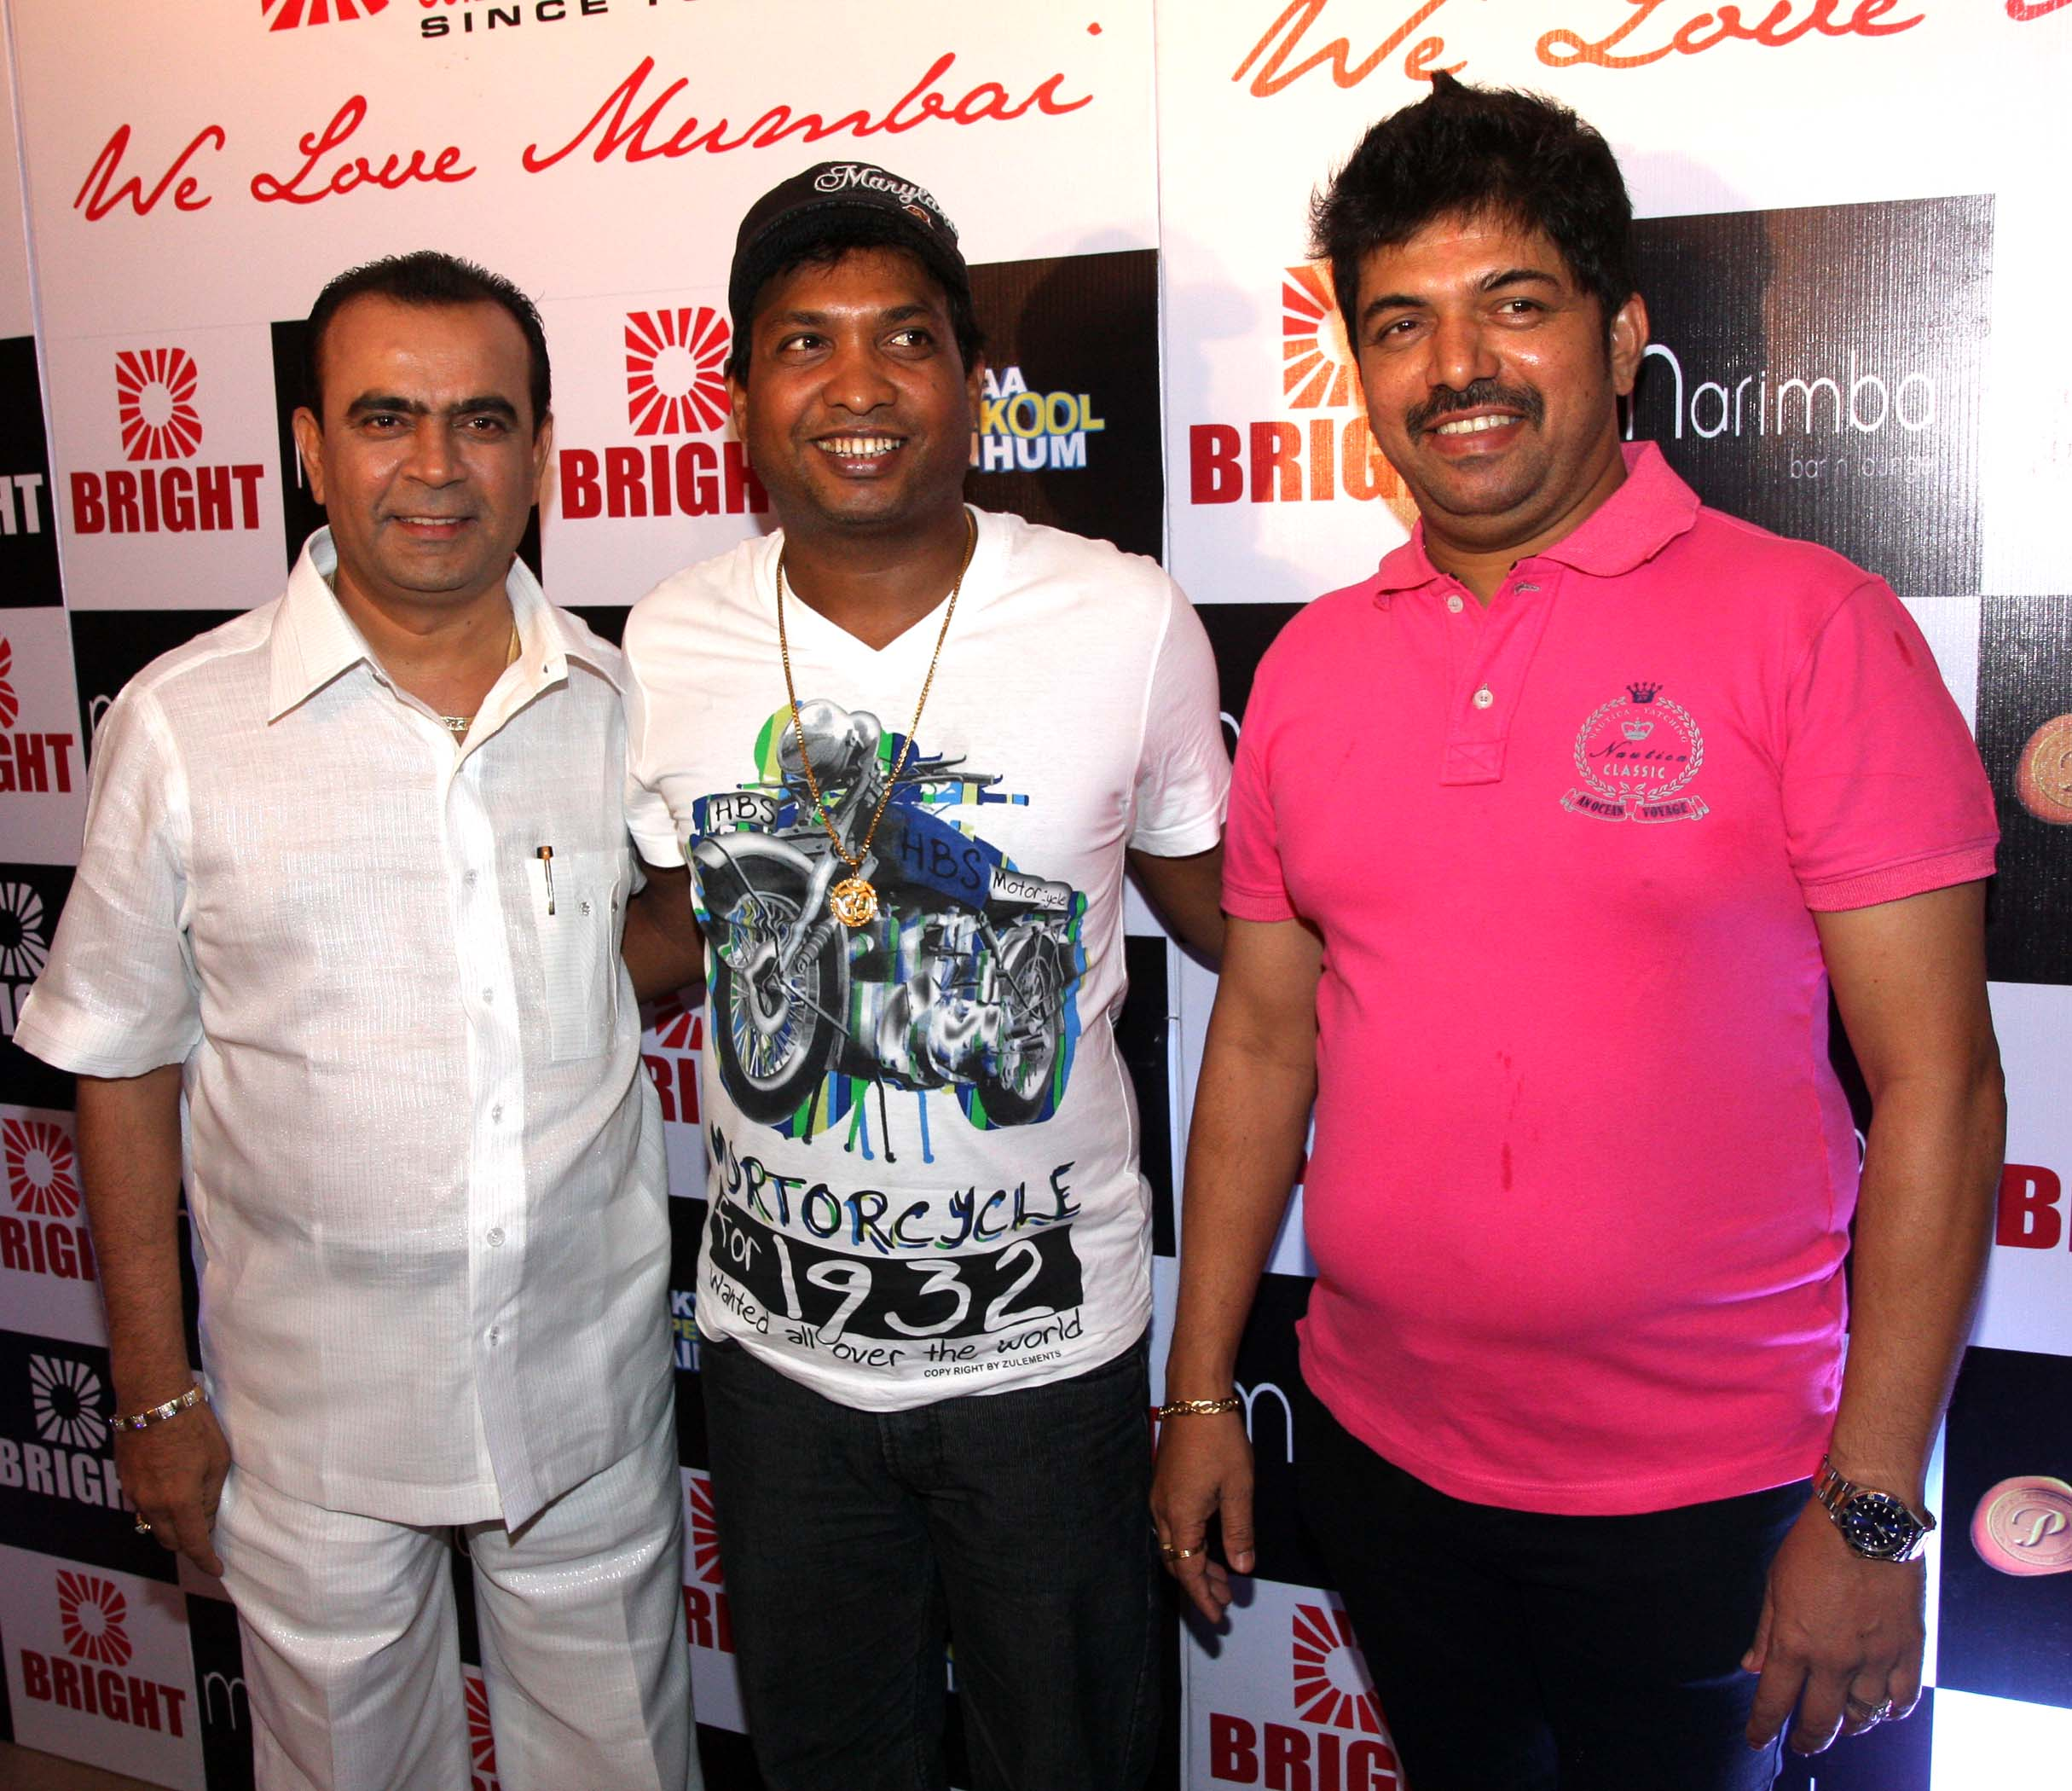 Yogesh Lakhani Event Of We love Mumbai Social Campaign Photo Gallery